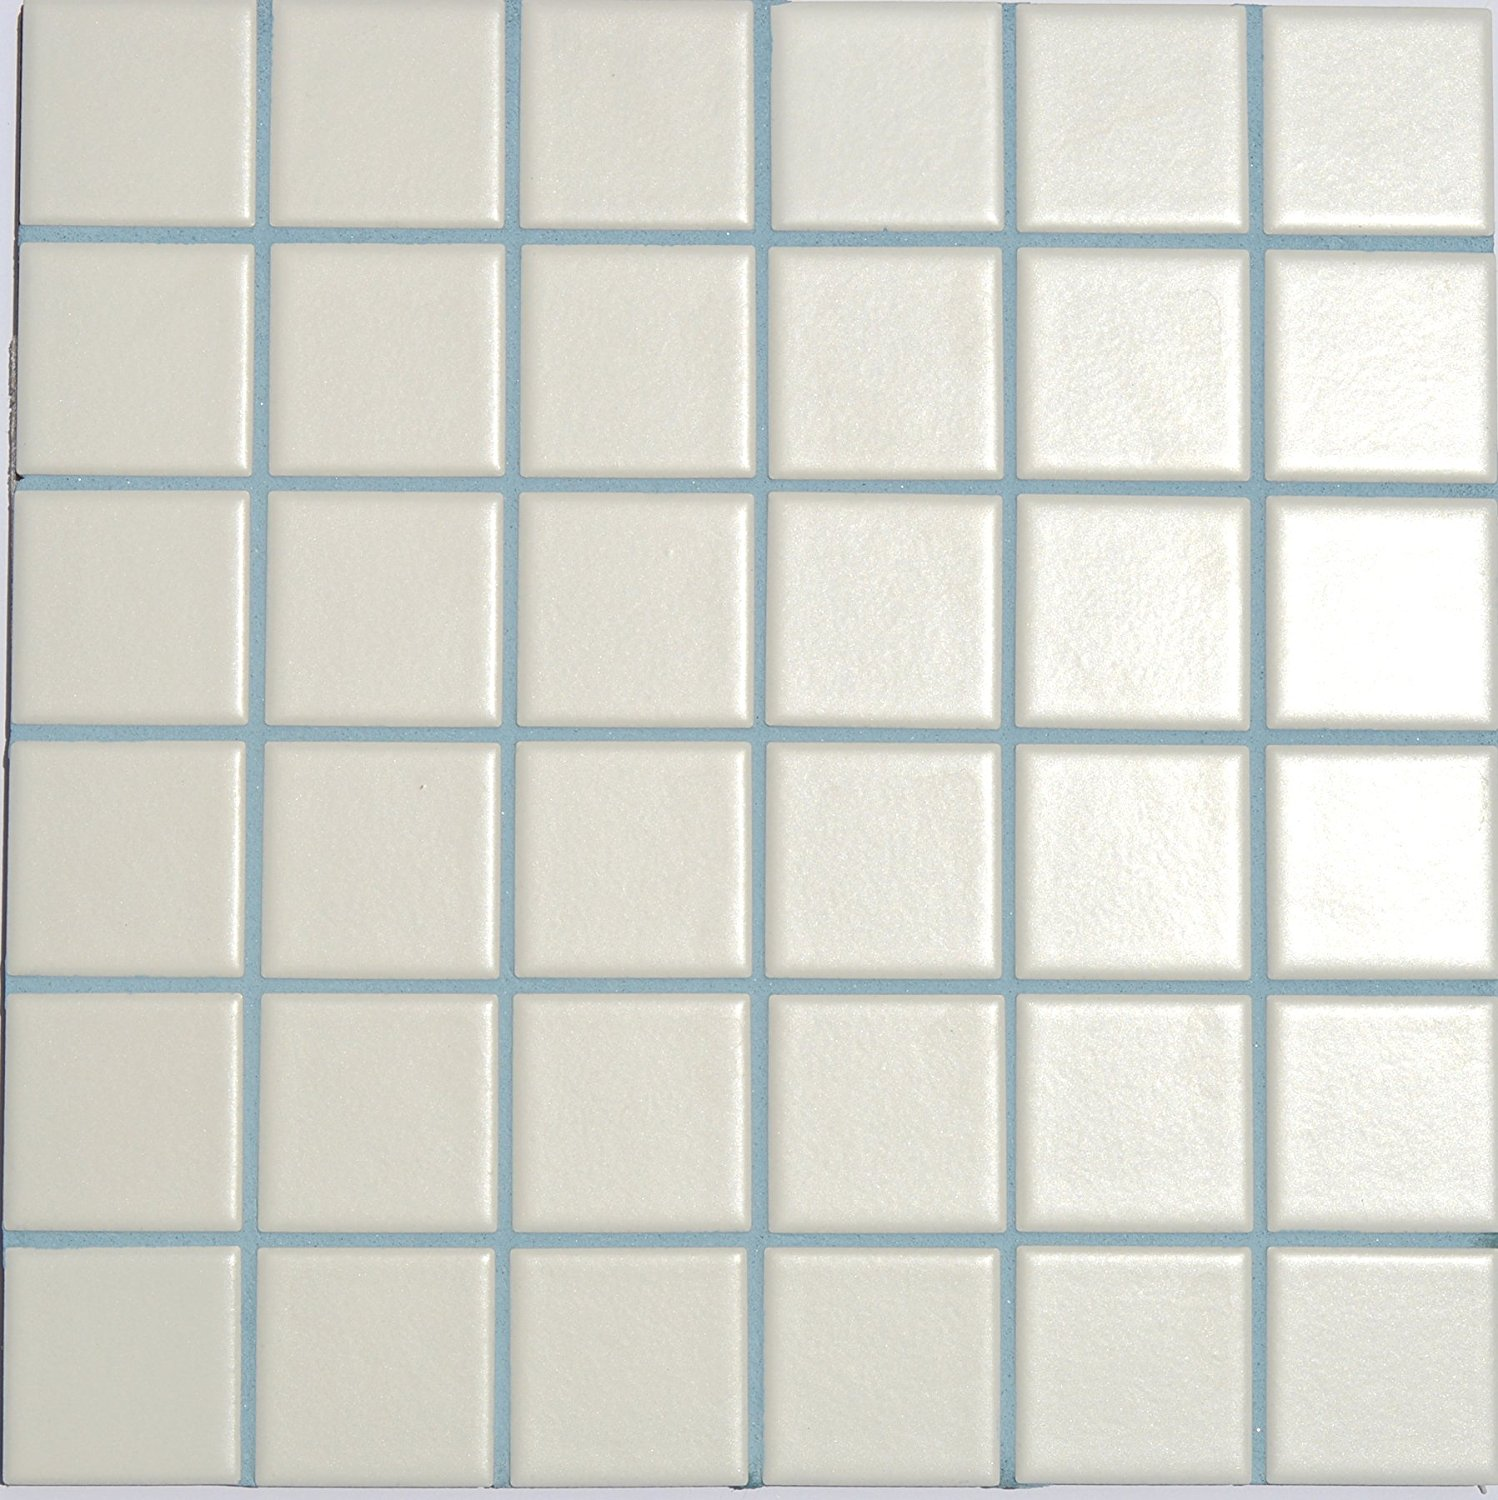 Get Quotations Blue Sailcloth Unsanded Tile Grout 10 Lbs With Pigment In The Mix